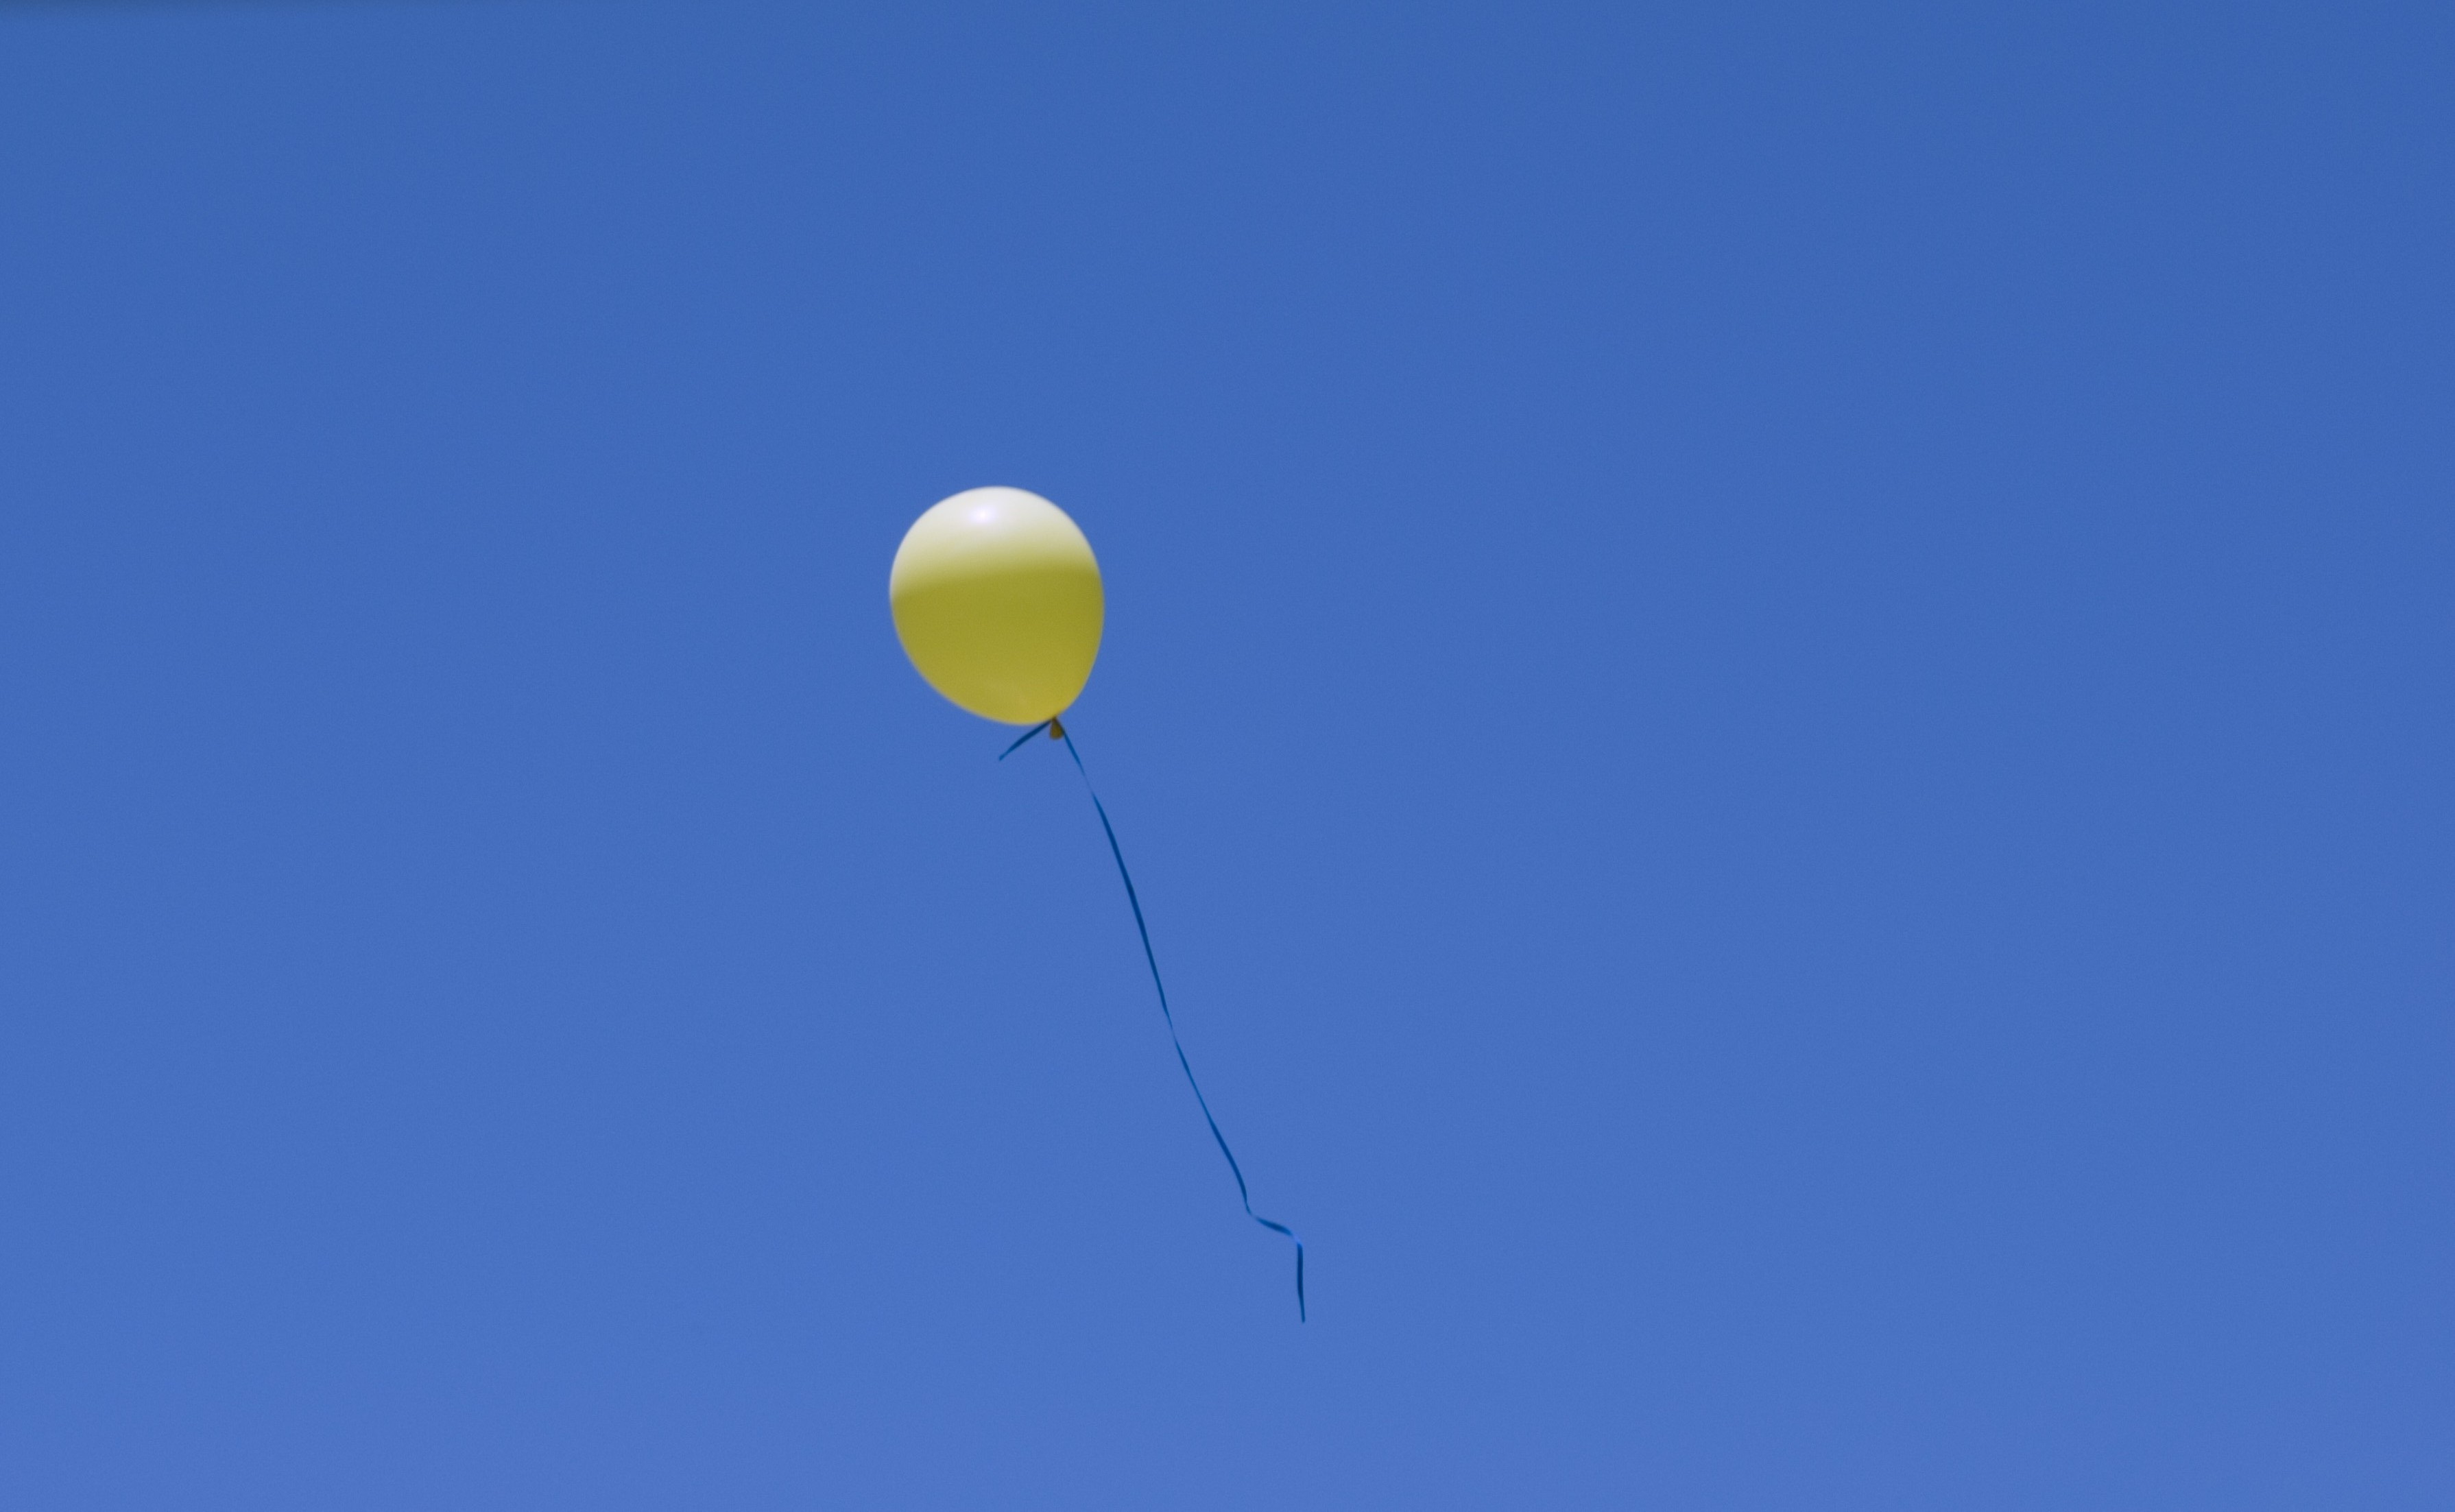 a bright yellow balloon floating in a blue sky